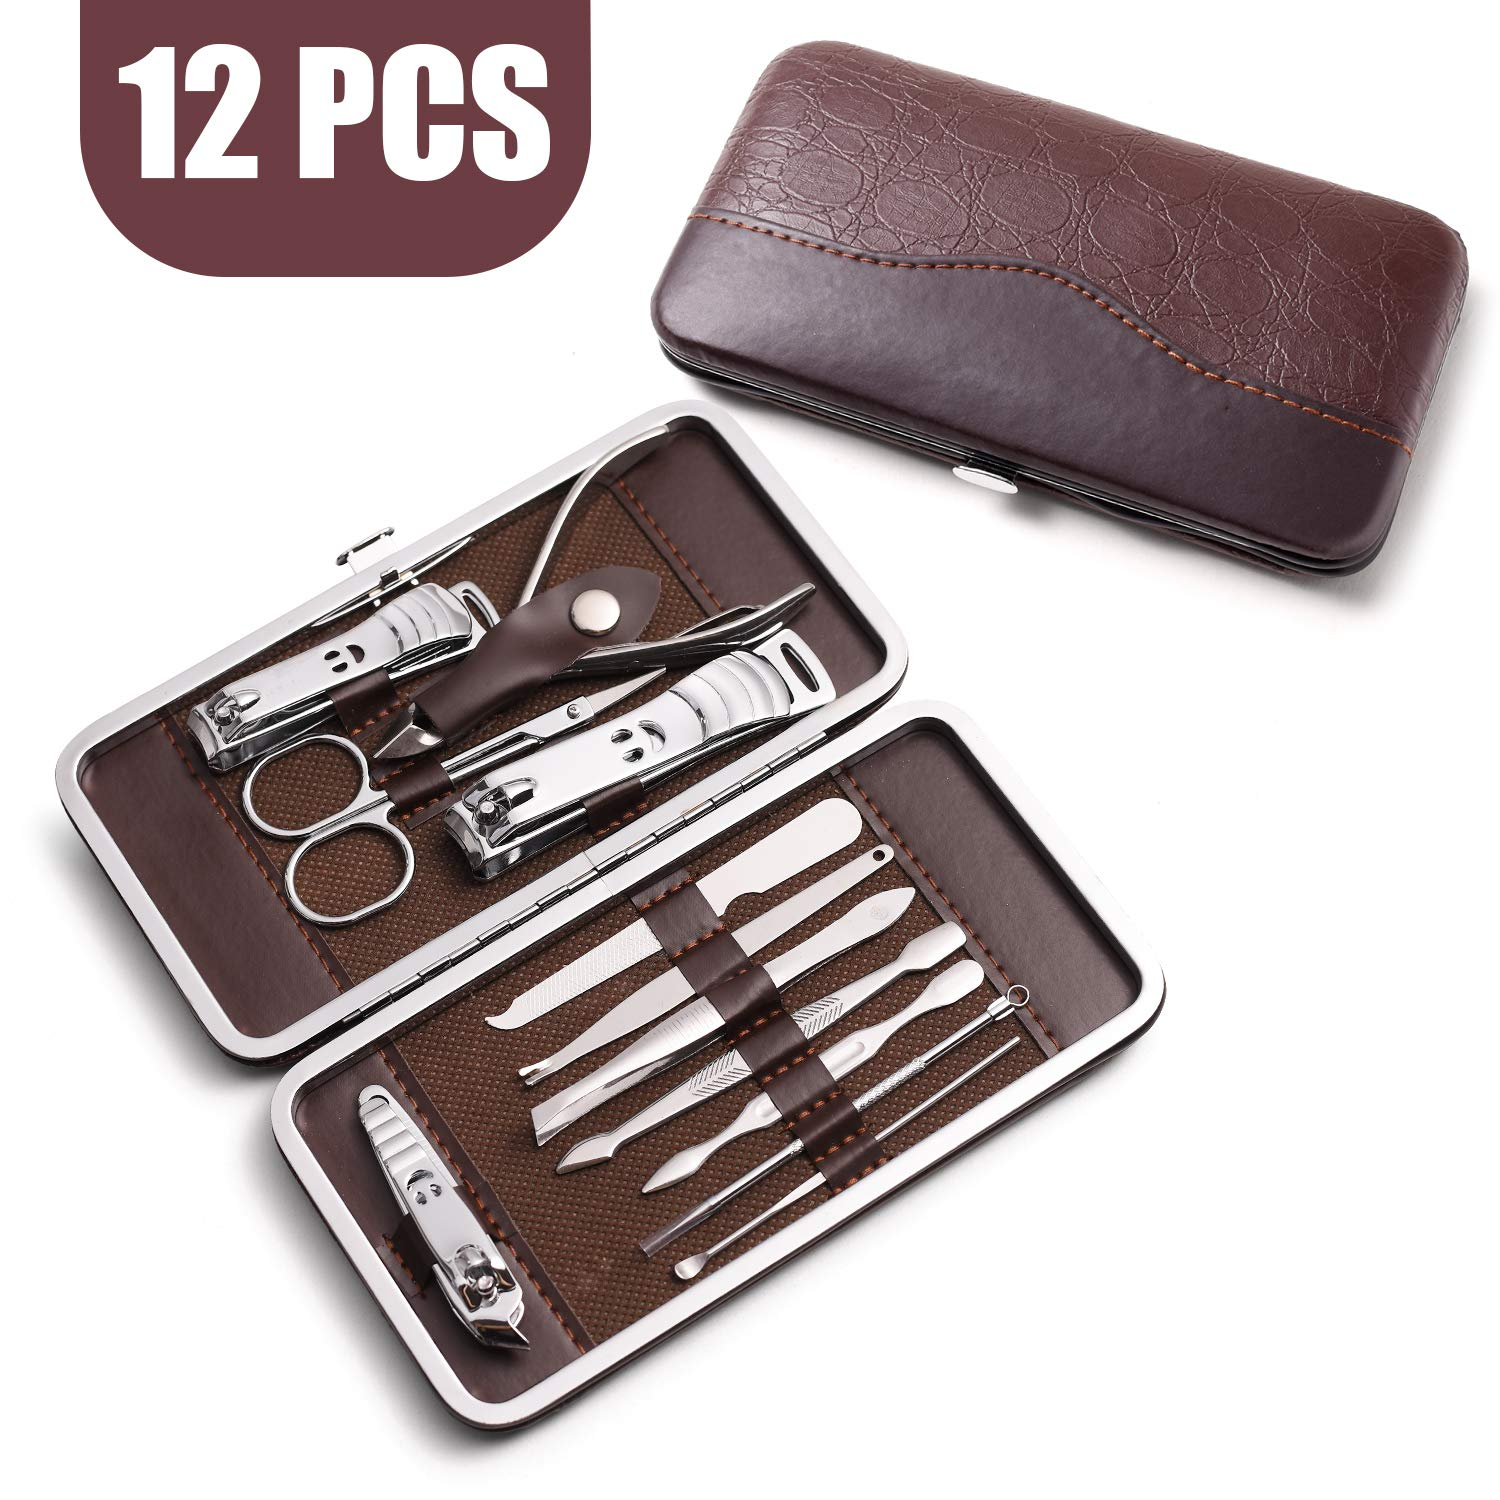 HOMEWINS Nail Clippers Sets High Precisio Stainless Steel Nail Cutter Pedicure Kit Nail File Sharp Nail Scissors and Clipper Manicure Pedicure Kit Fingernails Toenails (12 in 1)